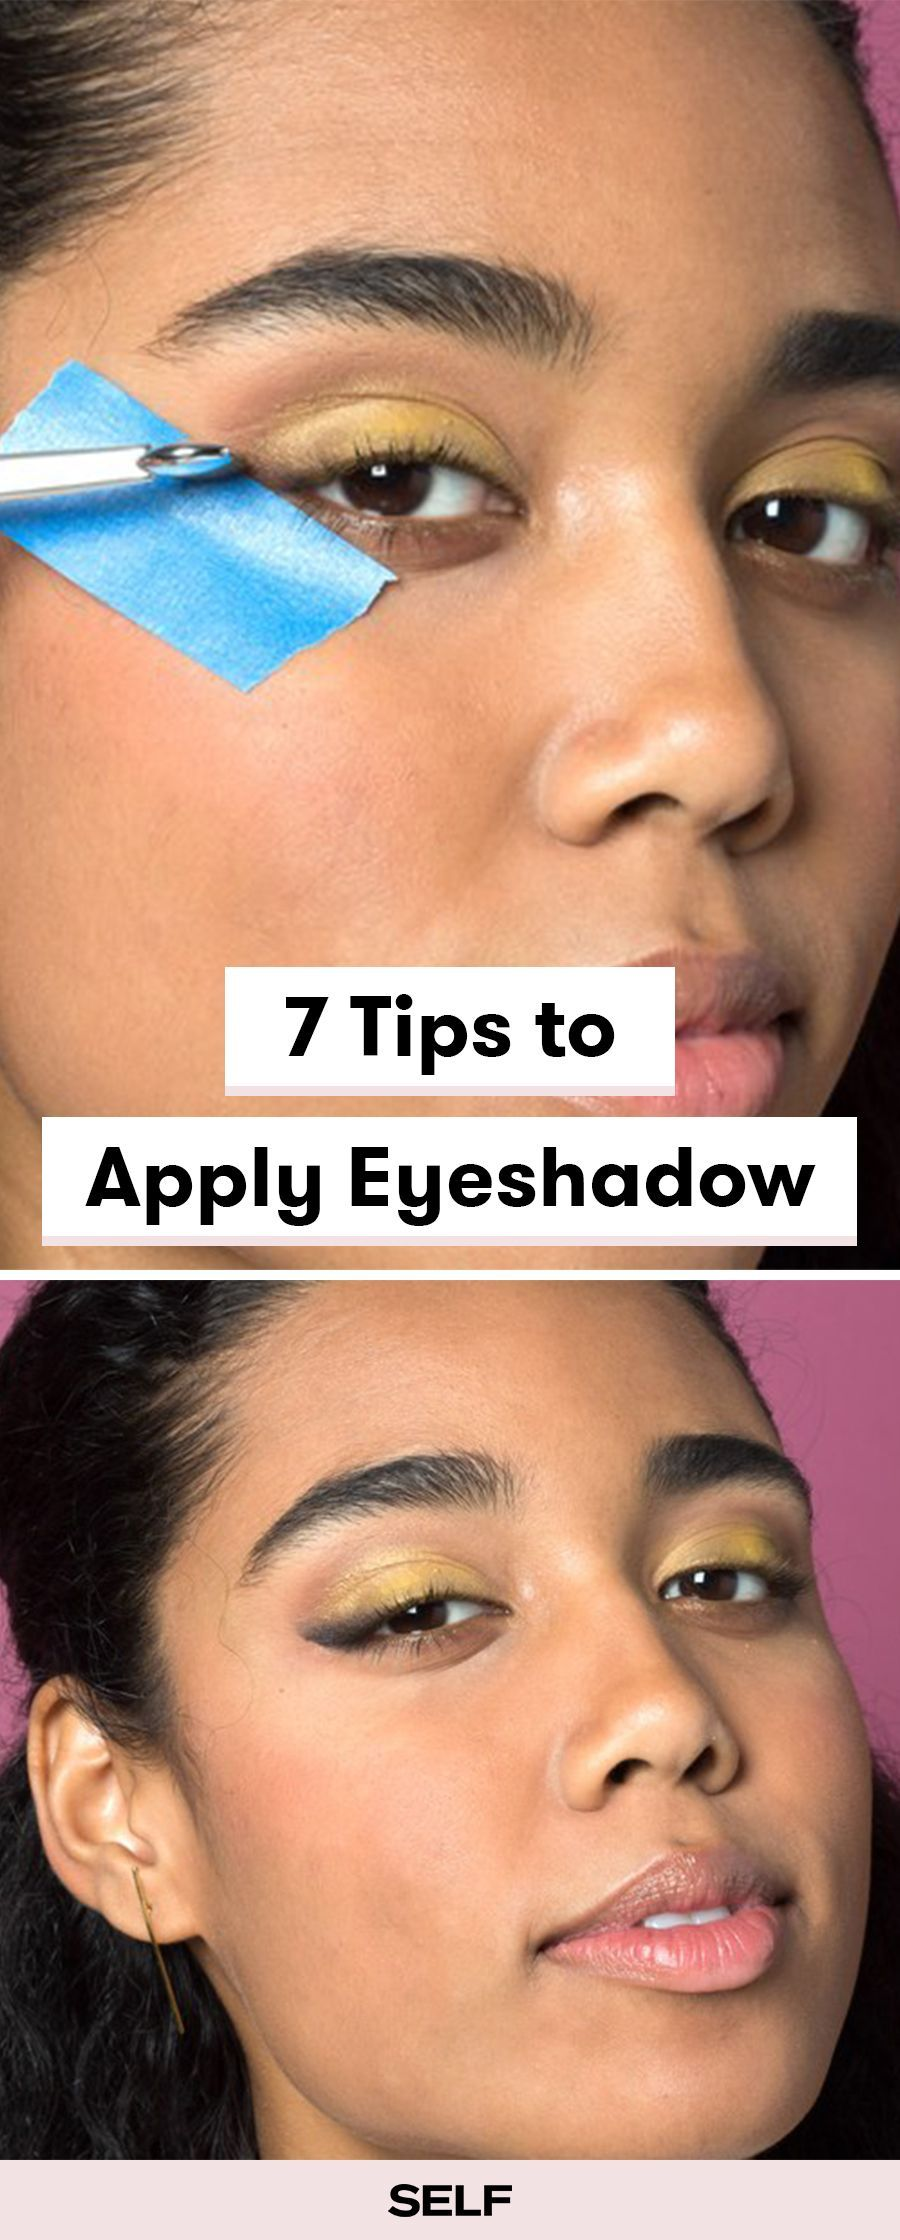 7 Tips to Apply Eyeshadow Like You Actually Know What You